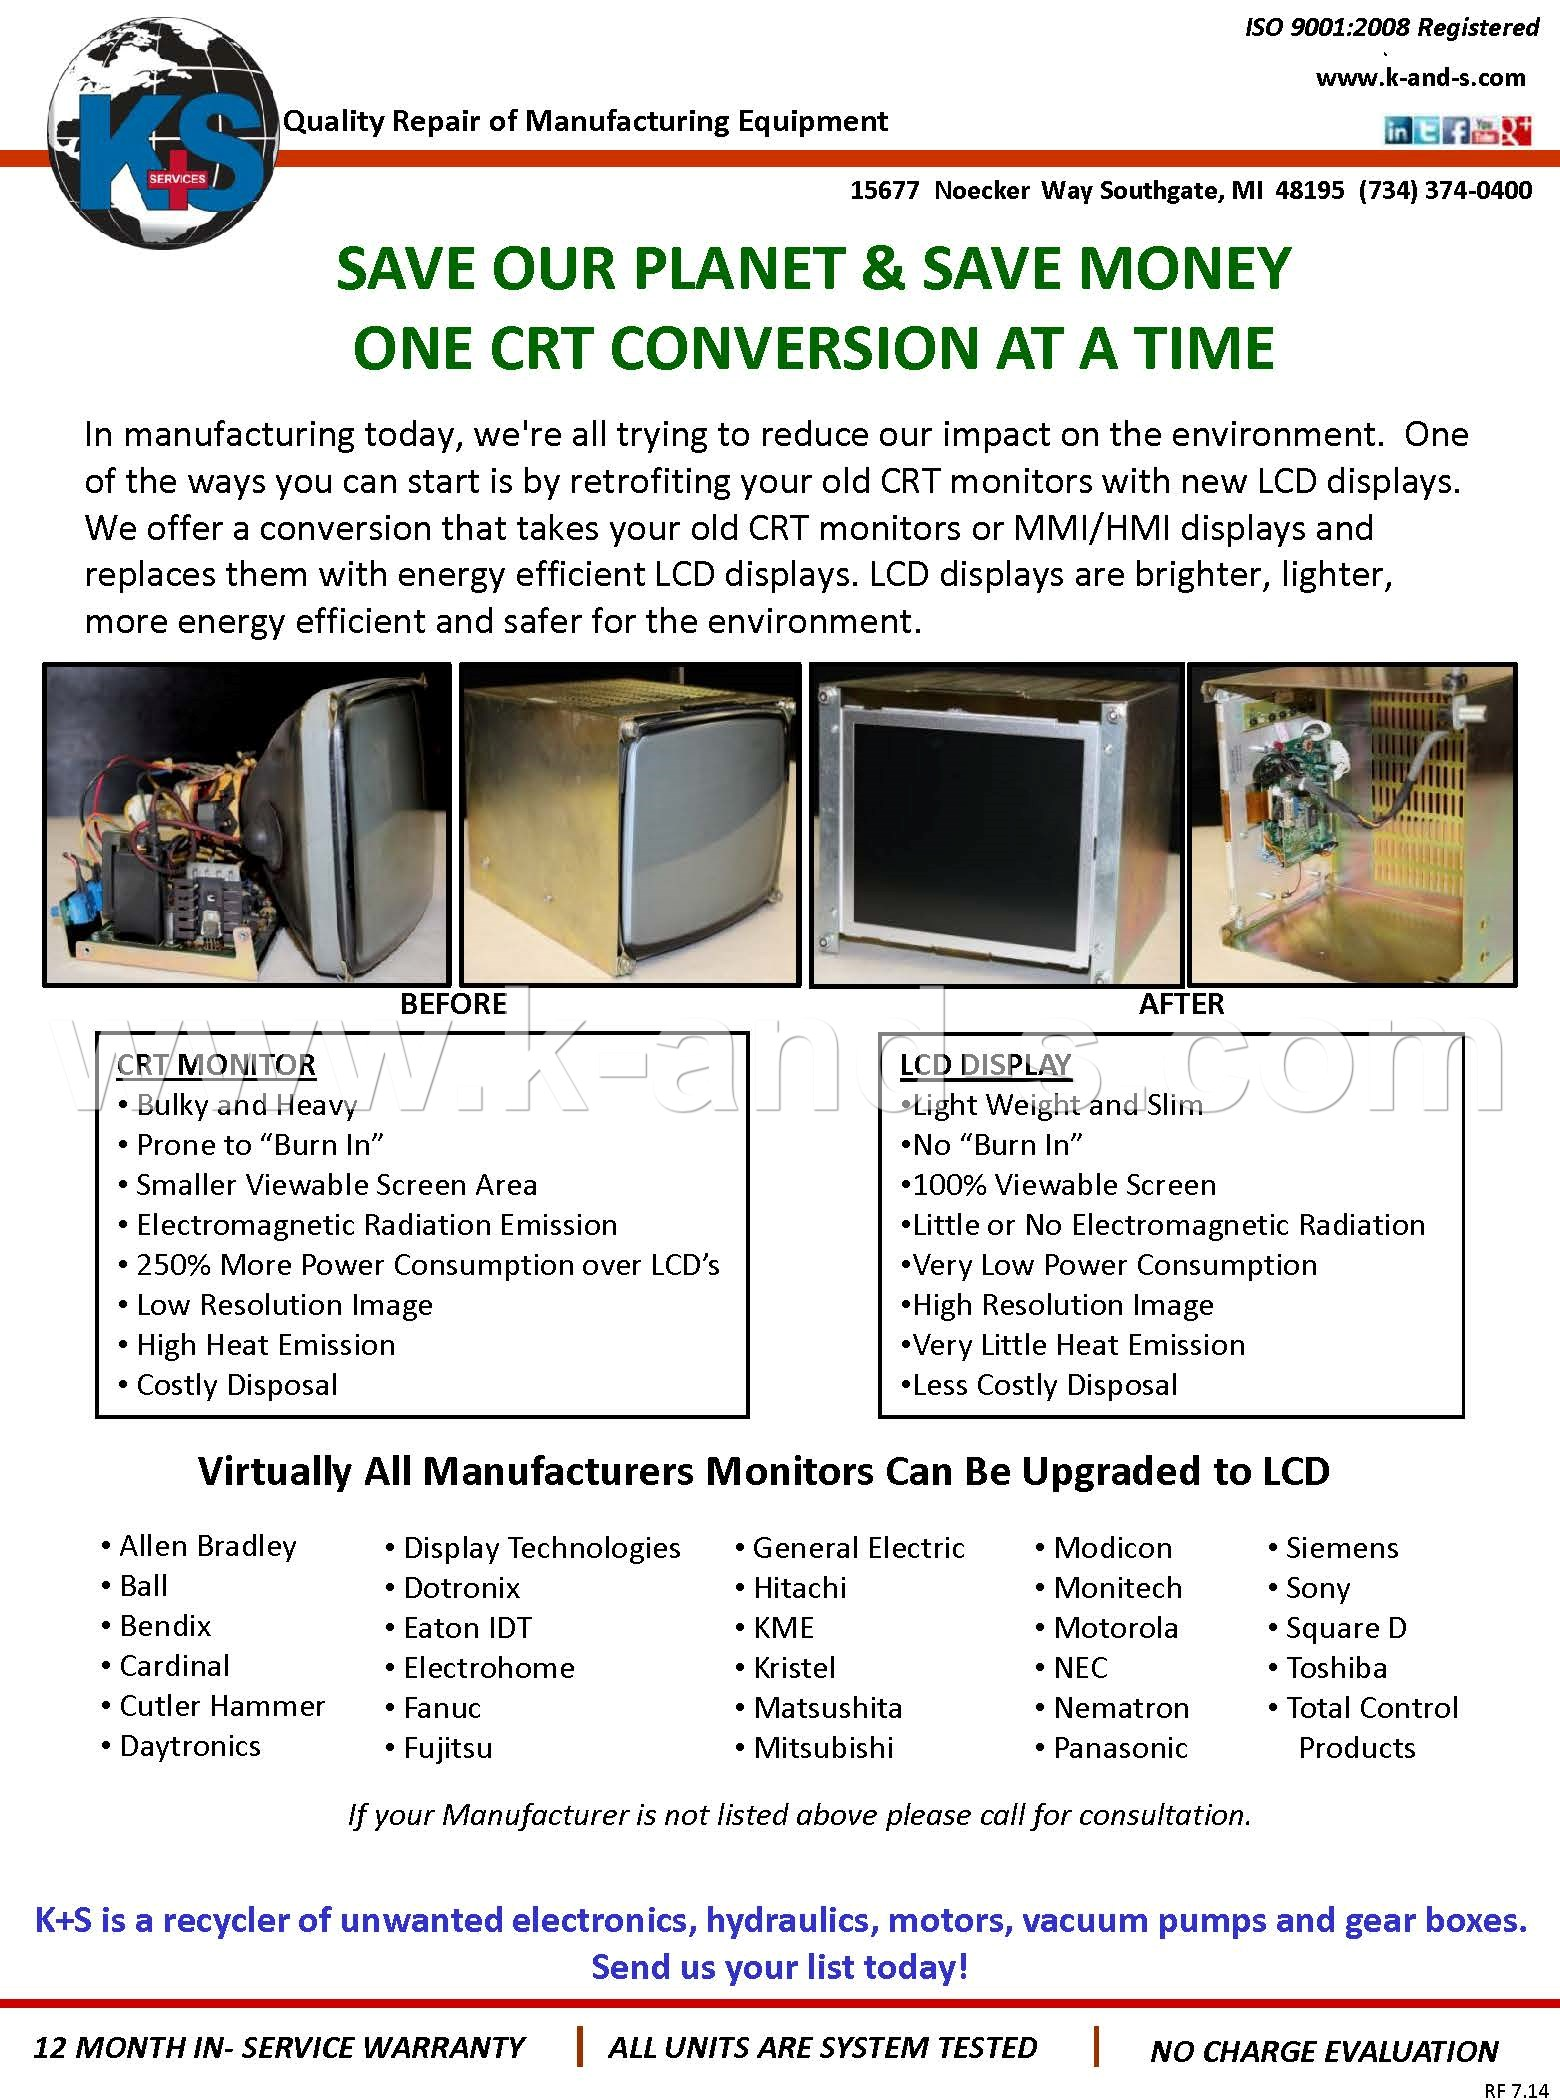 K S Services Inc Southgate Michigan Mi 48195 At Electronics Repair Center We Specialize In Industrial Crt Conversion Inforamtion